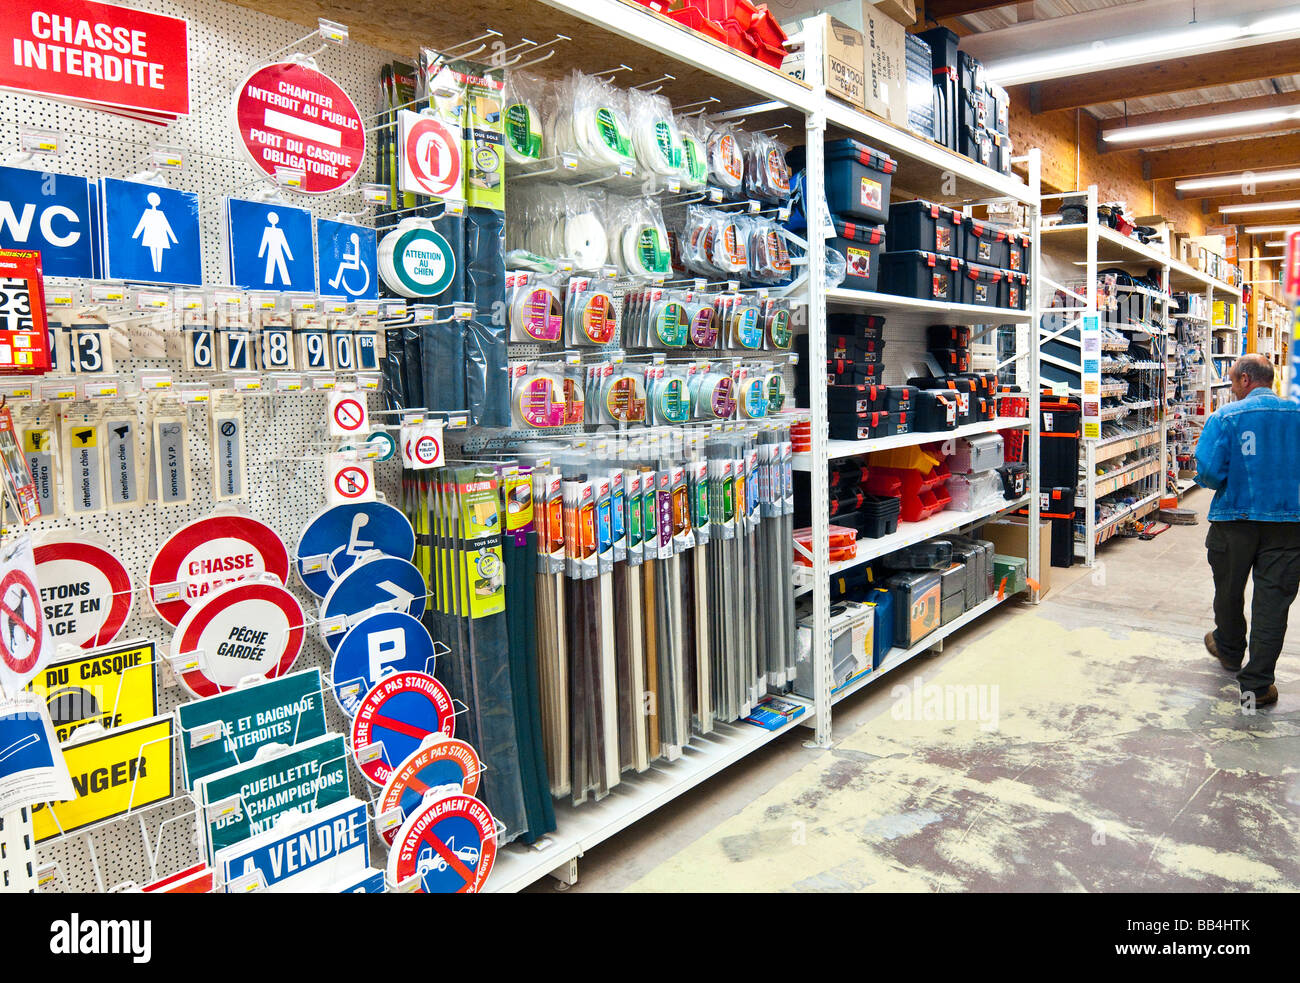 Domestic signs and draft excluder fittings display at 'Bricomarché' D-I-Y store - France. - Stock Image